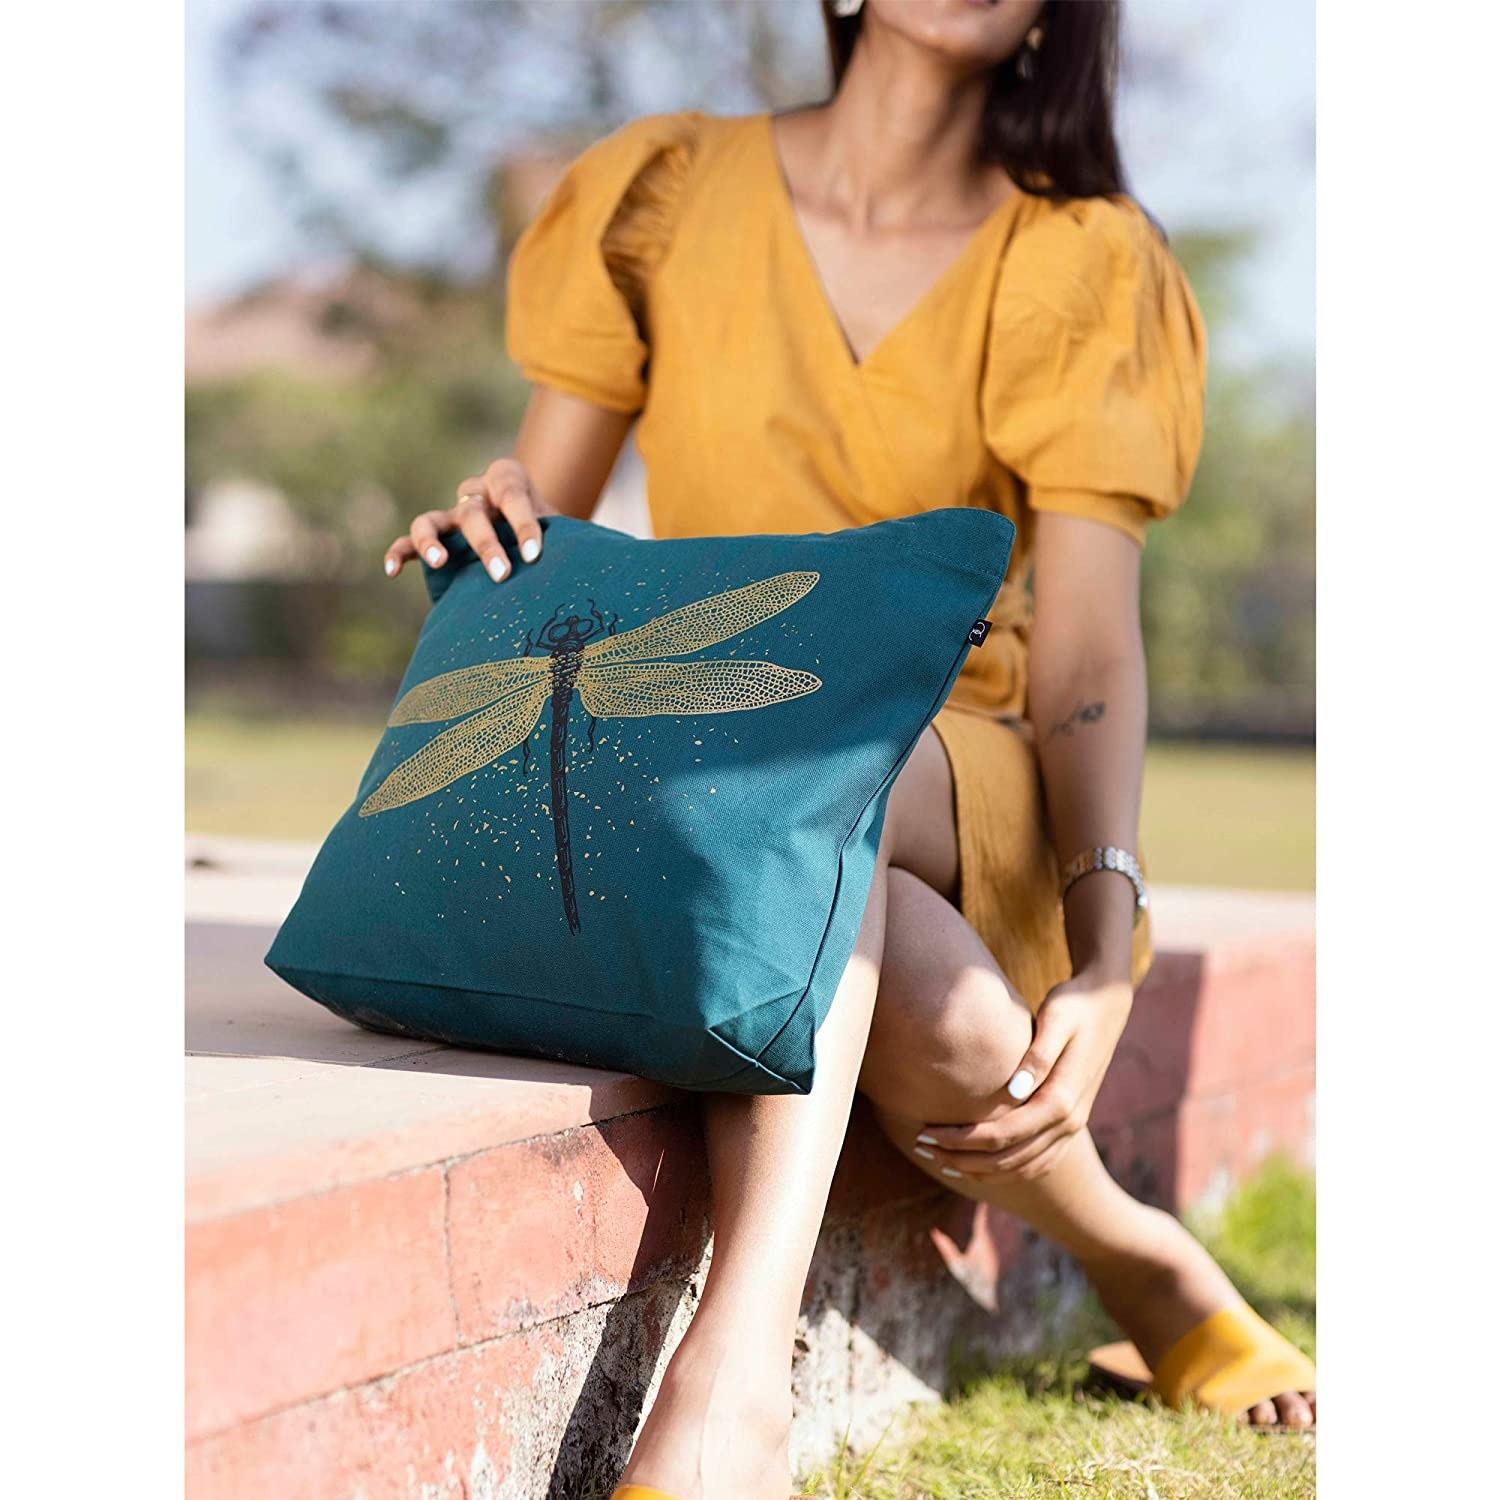 A teal tote bag with a golden dragonfly on it